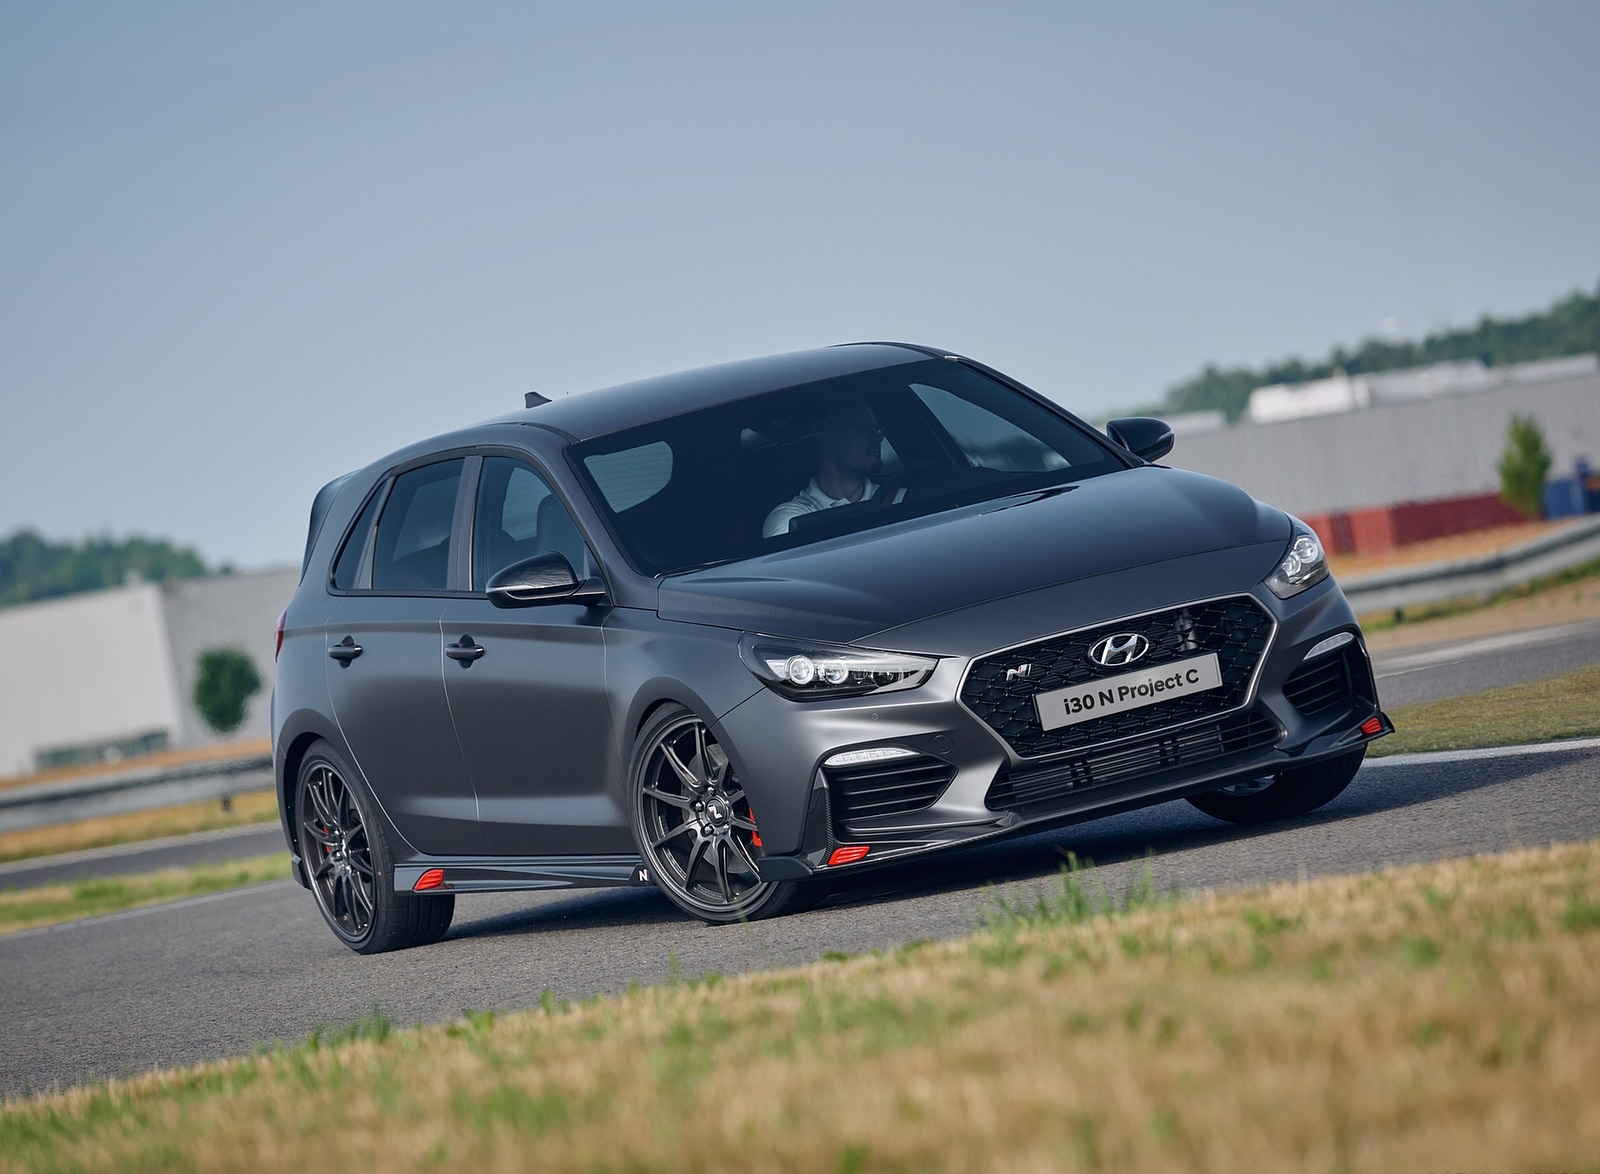 2020 Hyundai i30 N Project C Front Three-Quarter Wallpapers (4)